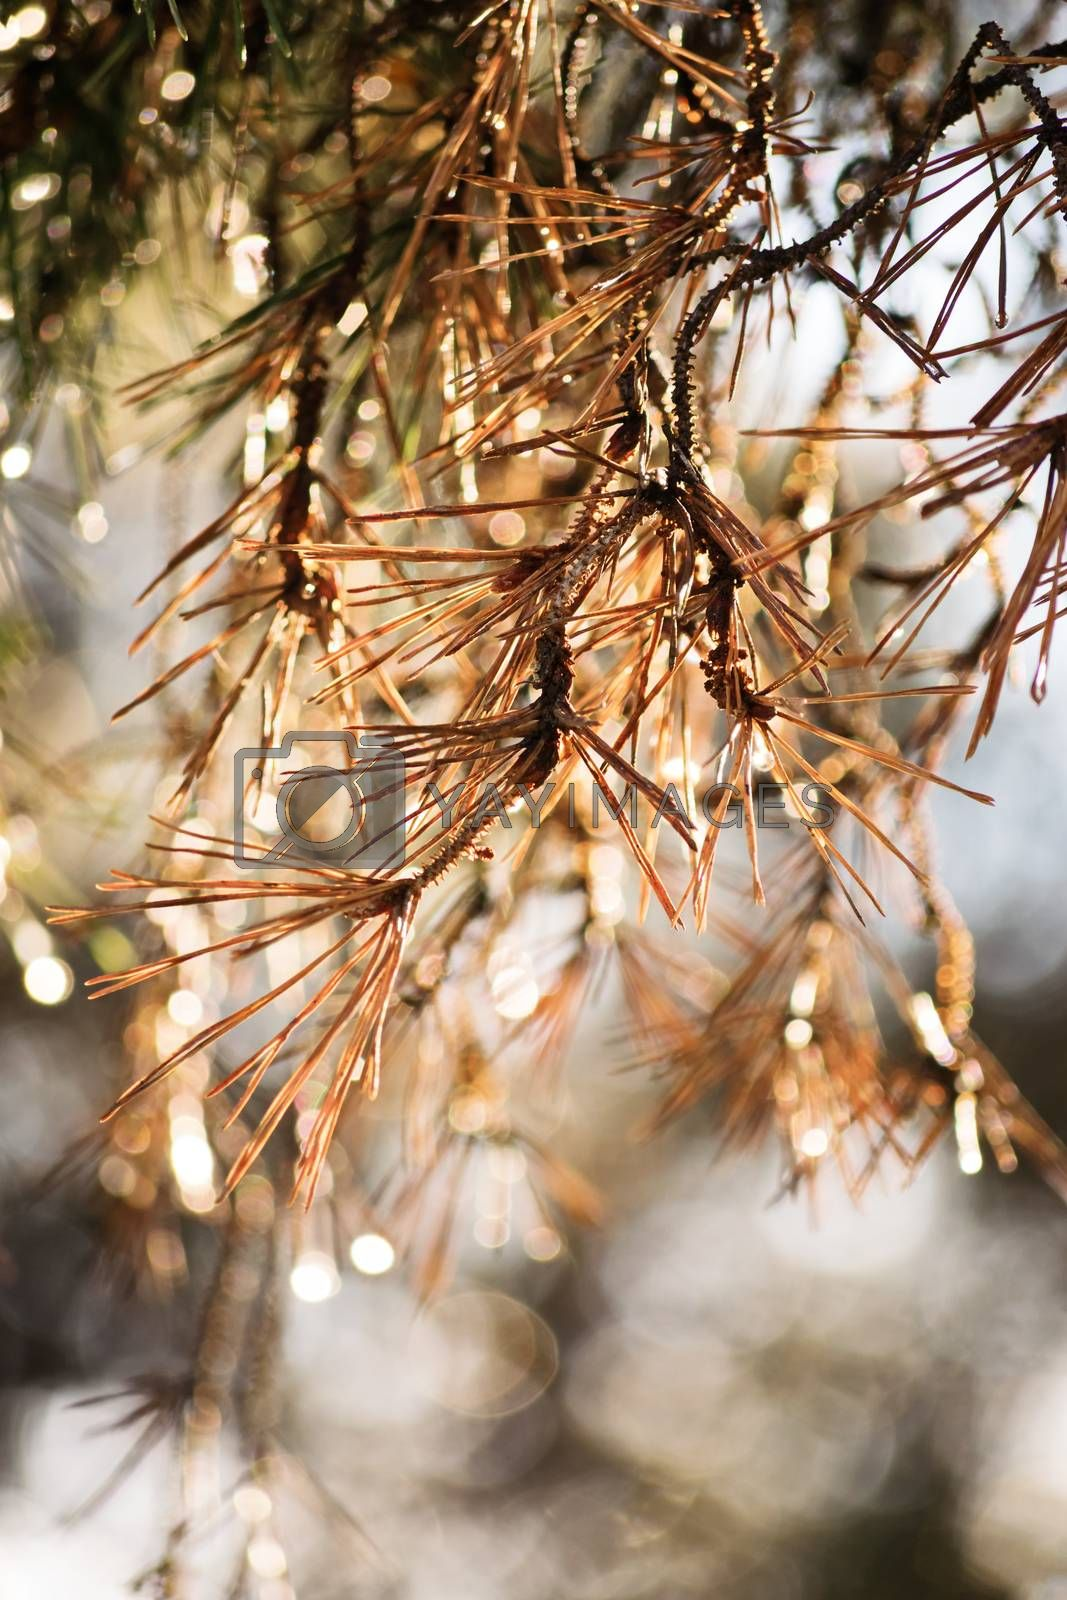 Close-up shot of withered pine tree needles.